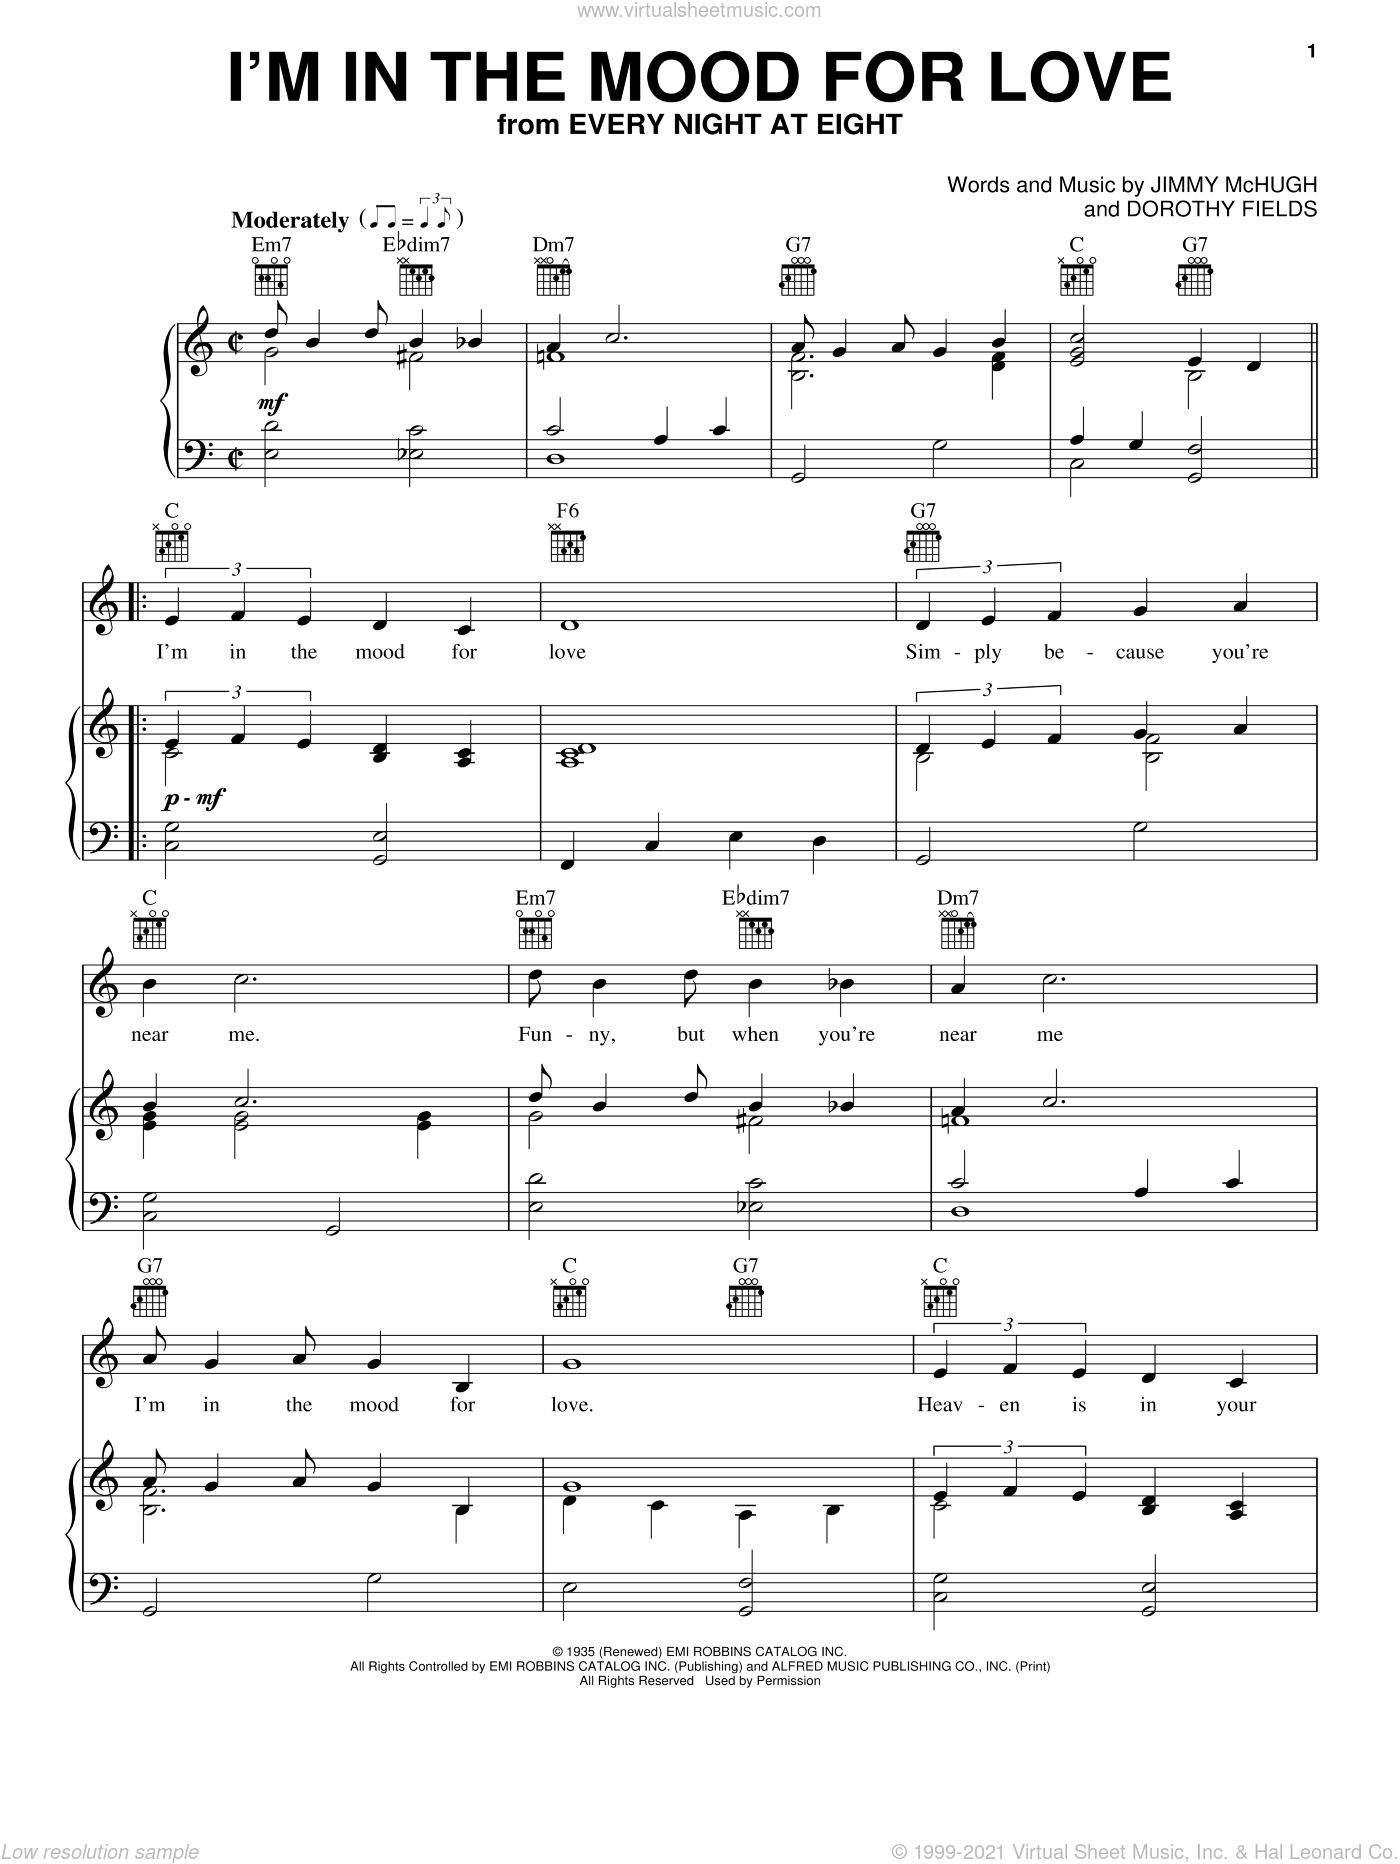 I'm In The Mood For Love sheet music for voice, piano or guitar by Frank Sinatra, Louis Armstrong, Nat King Cole, Dorothy Fields and Jimmy McHugh, intermediate skill level